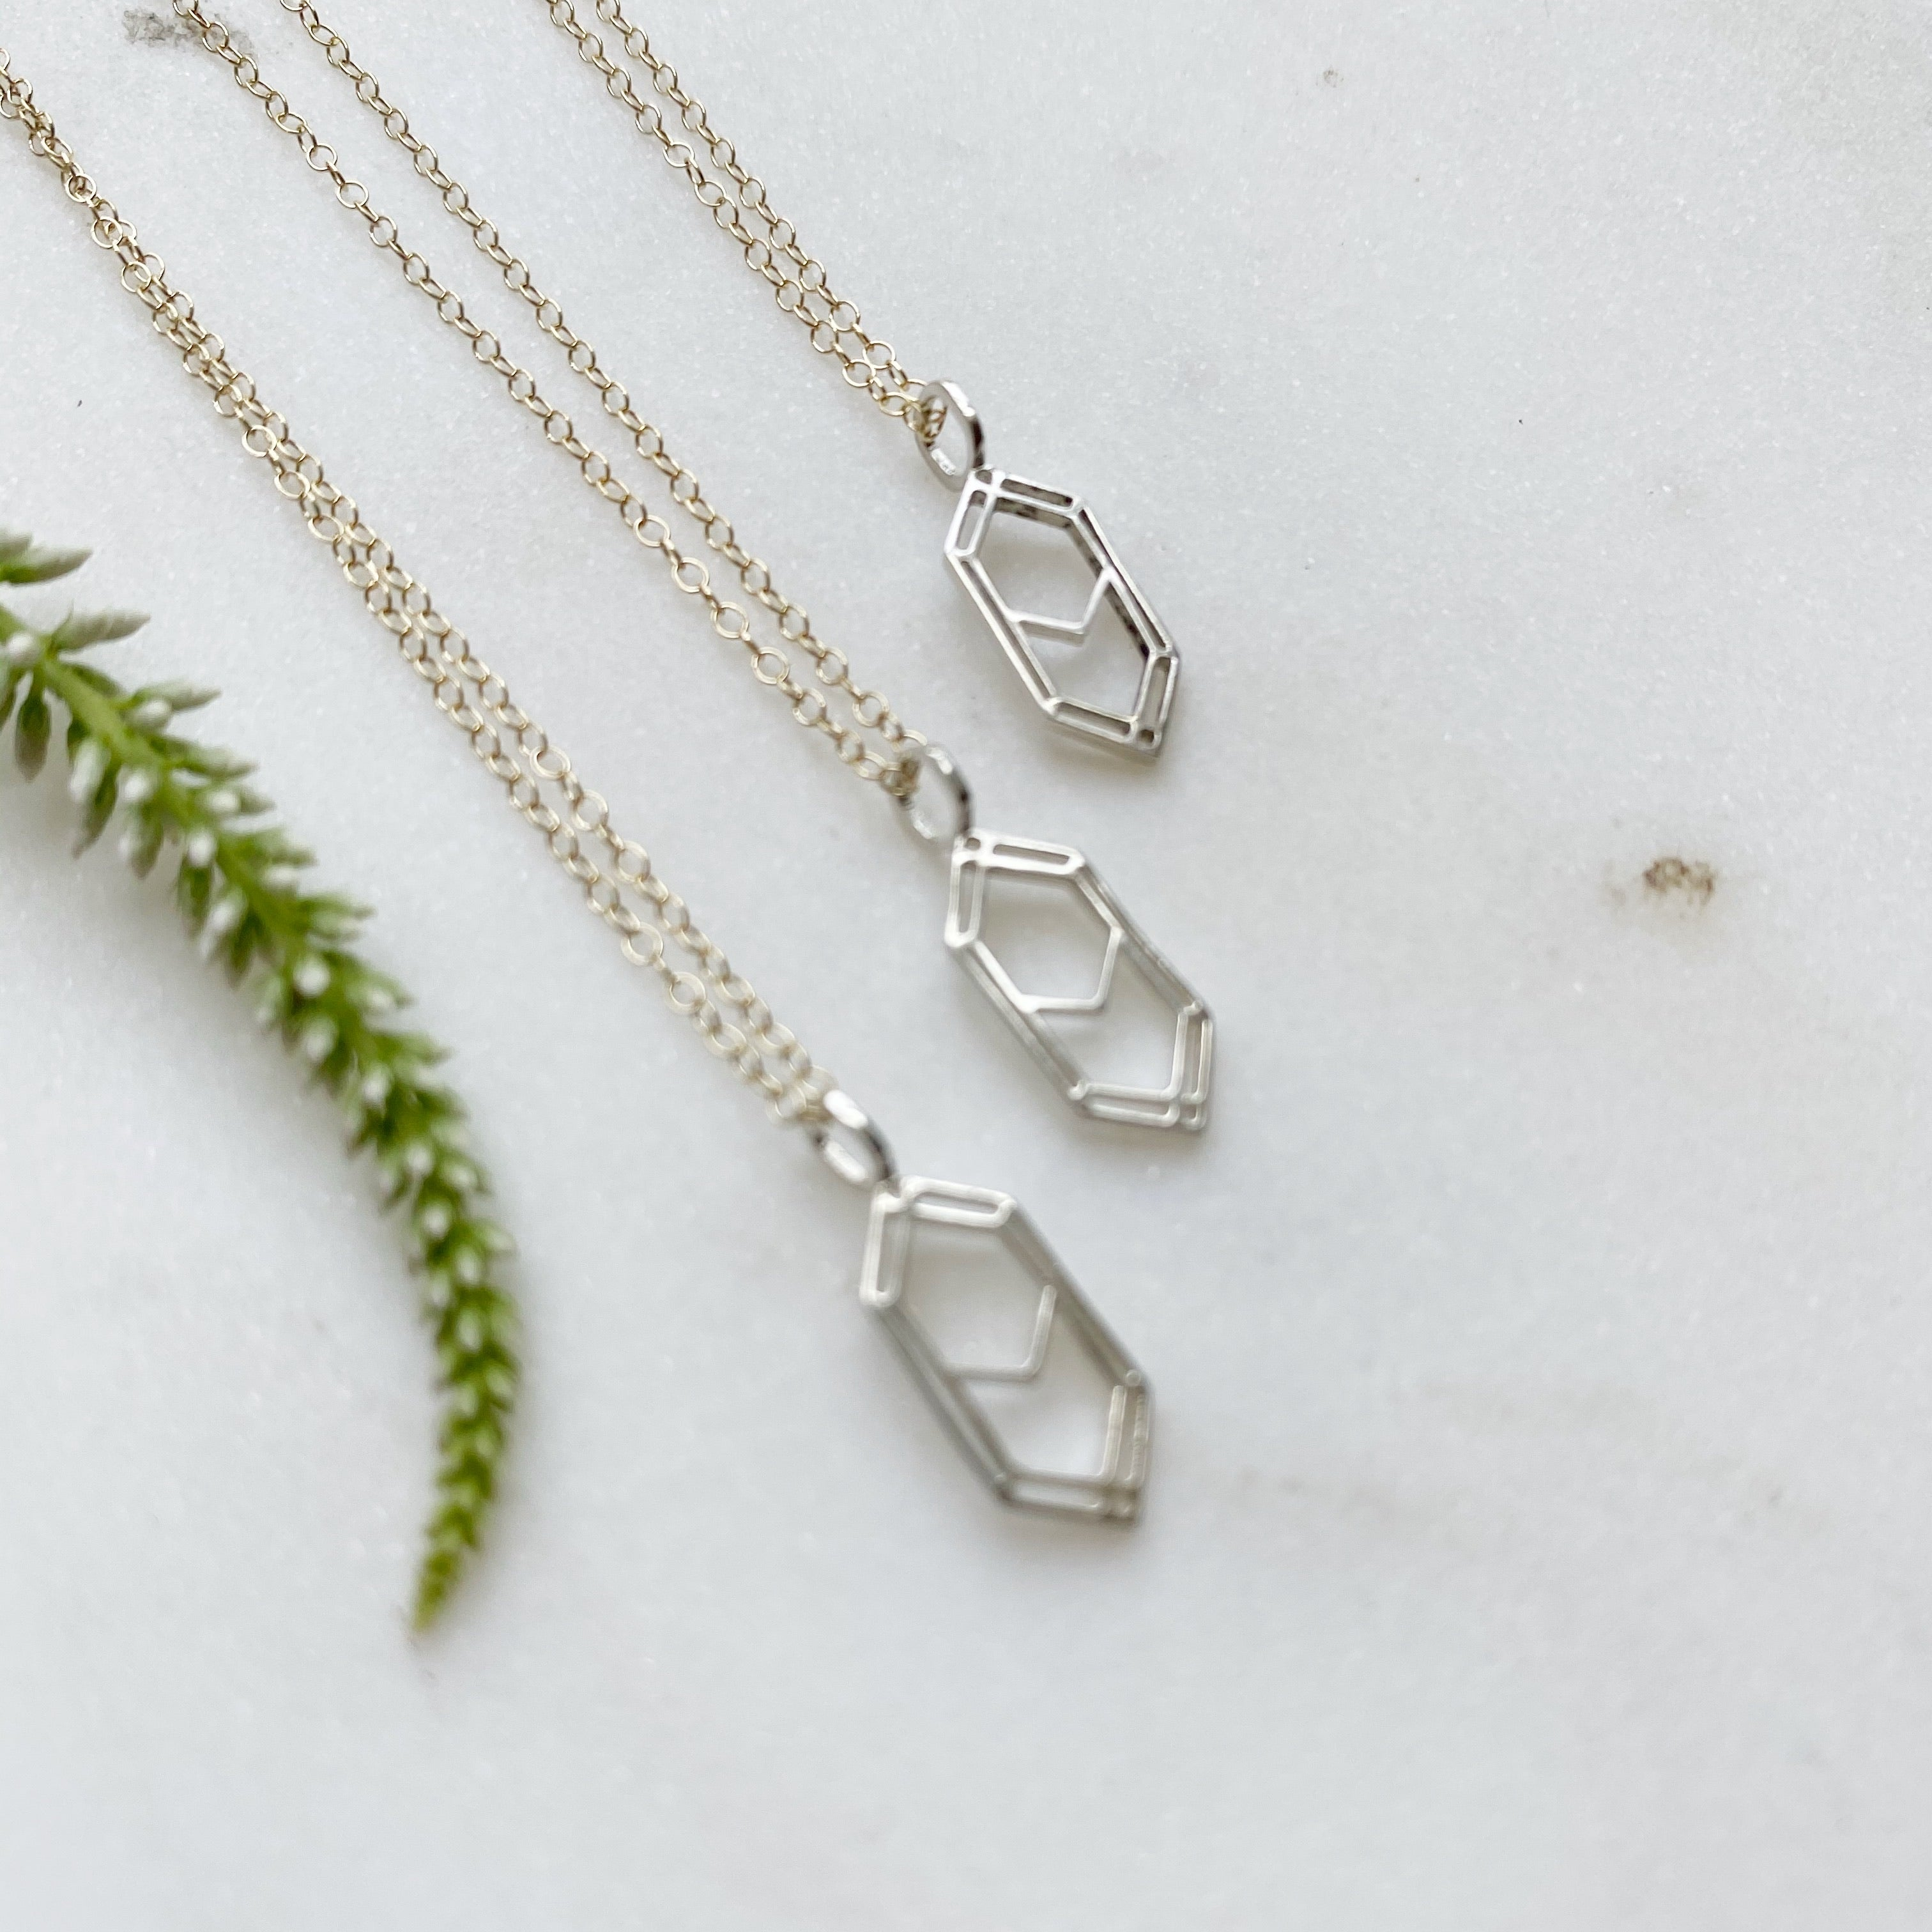 Midwinter Co logo necklace - Salt & Pepper Celestial Diamond Engagement Rings and Wedding Bands  by Midwinter Co.